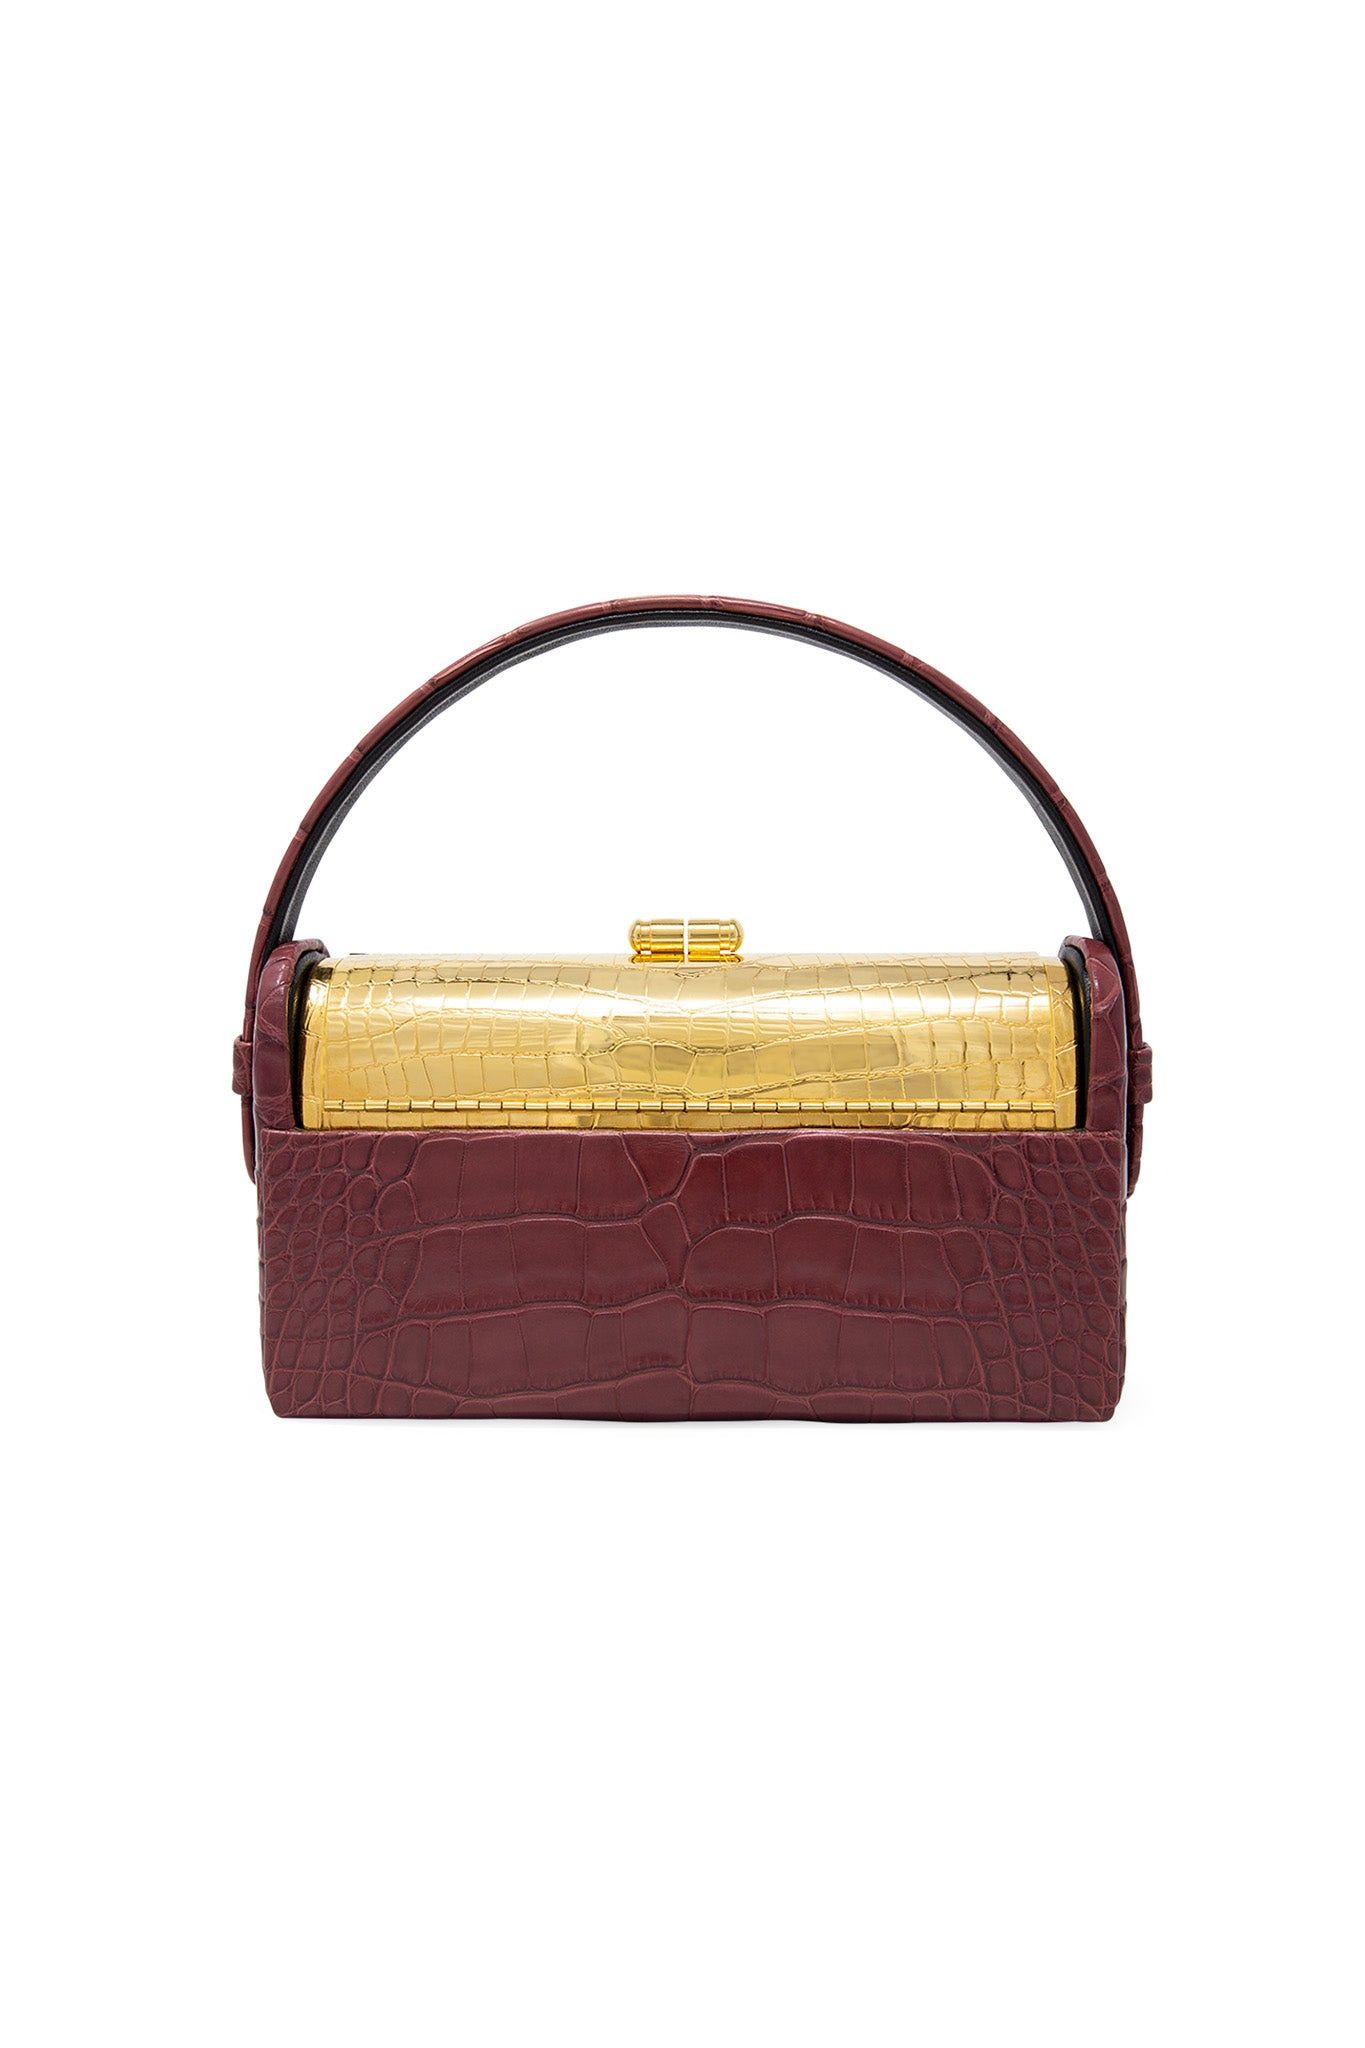 Gold Croco Régine Minaudière with Merlot Shiny Alligator Case